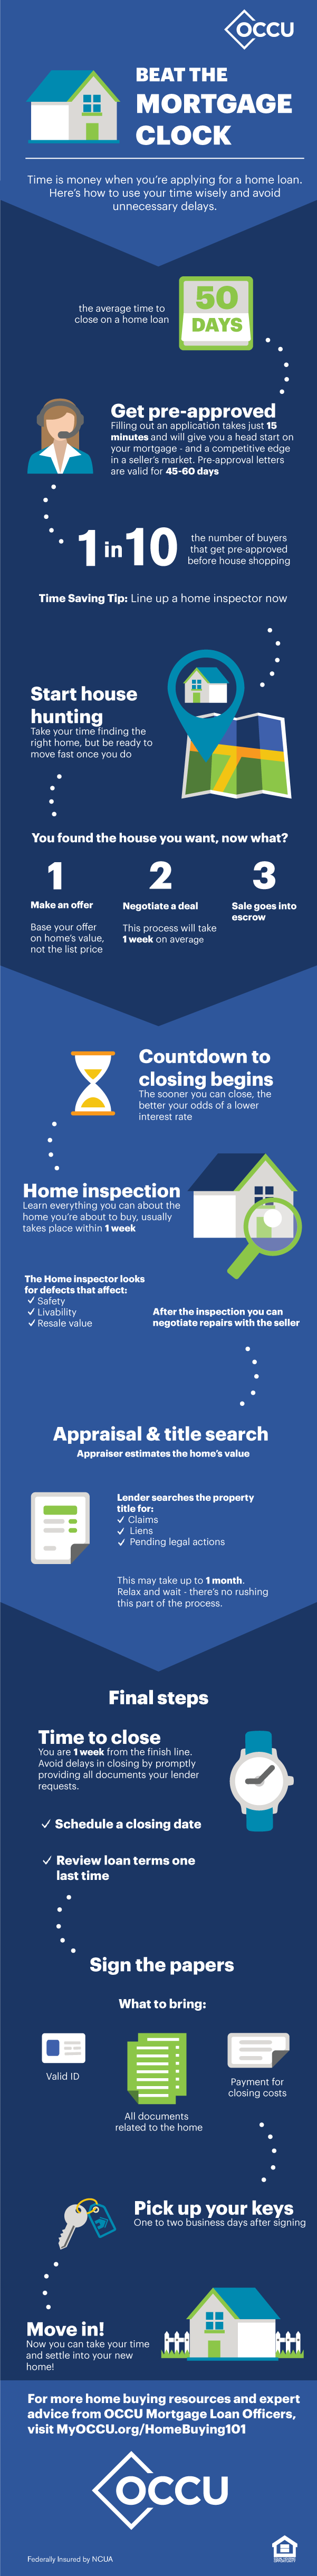 Beat the mortgage clock infographic